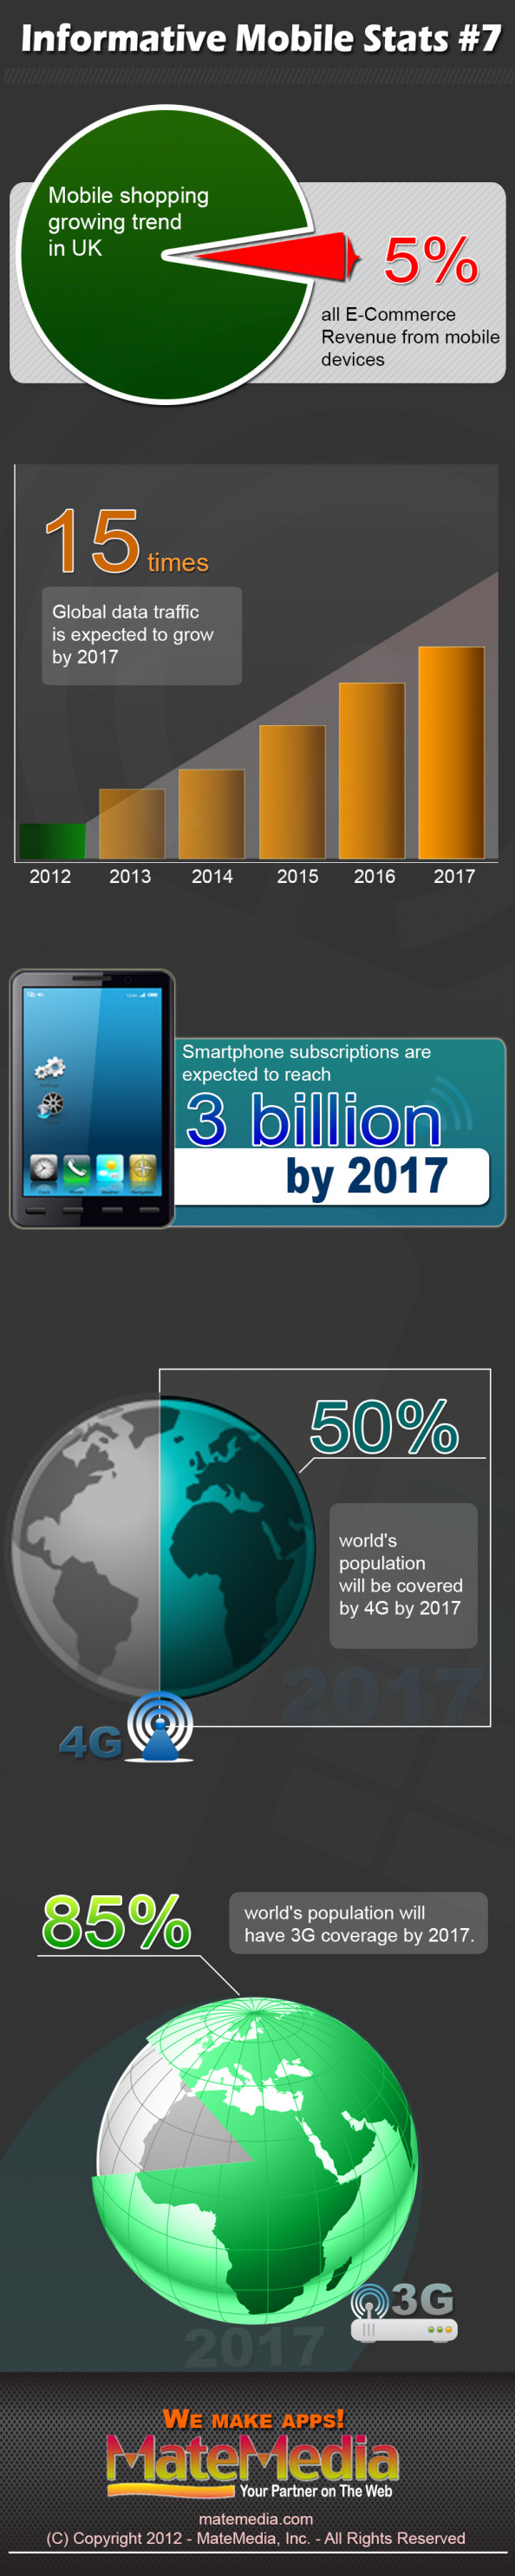 Informative Mobile Stats #7 Infographic